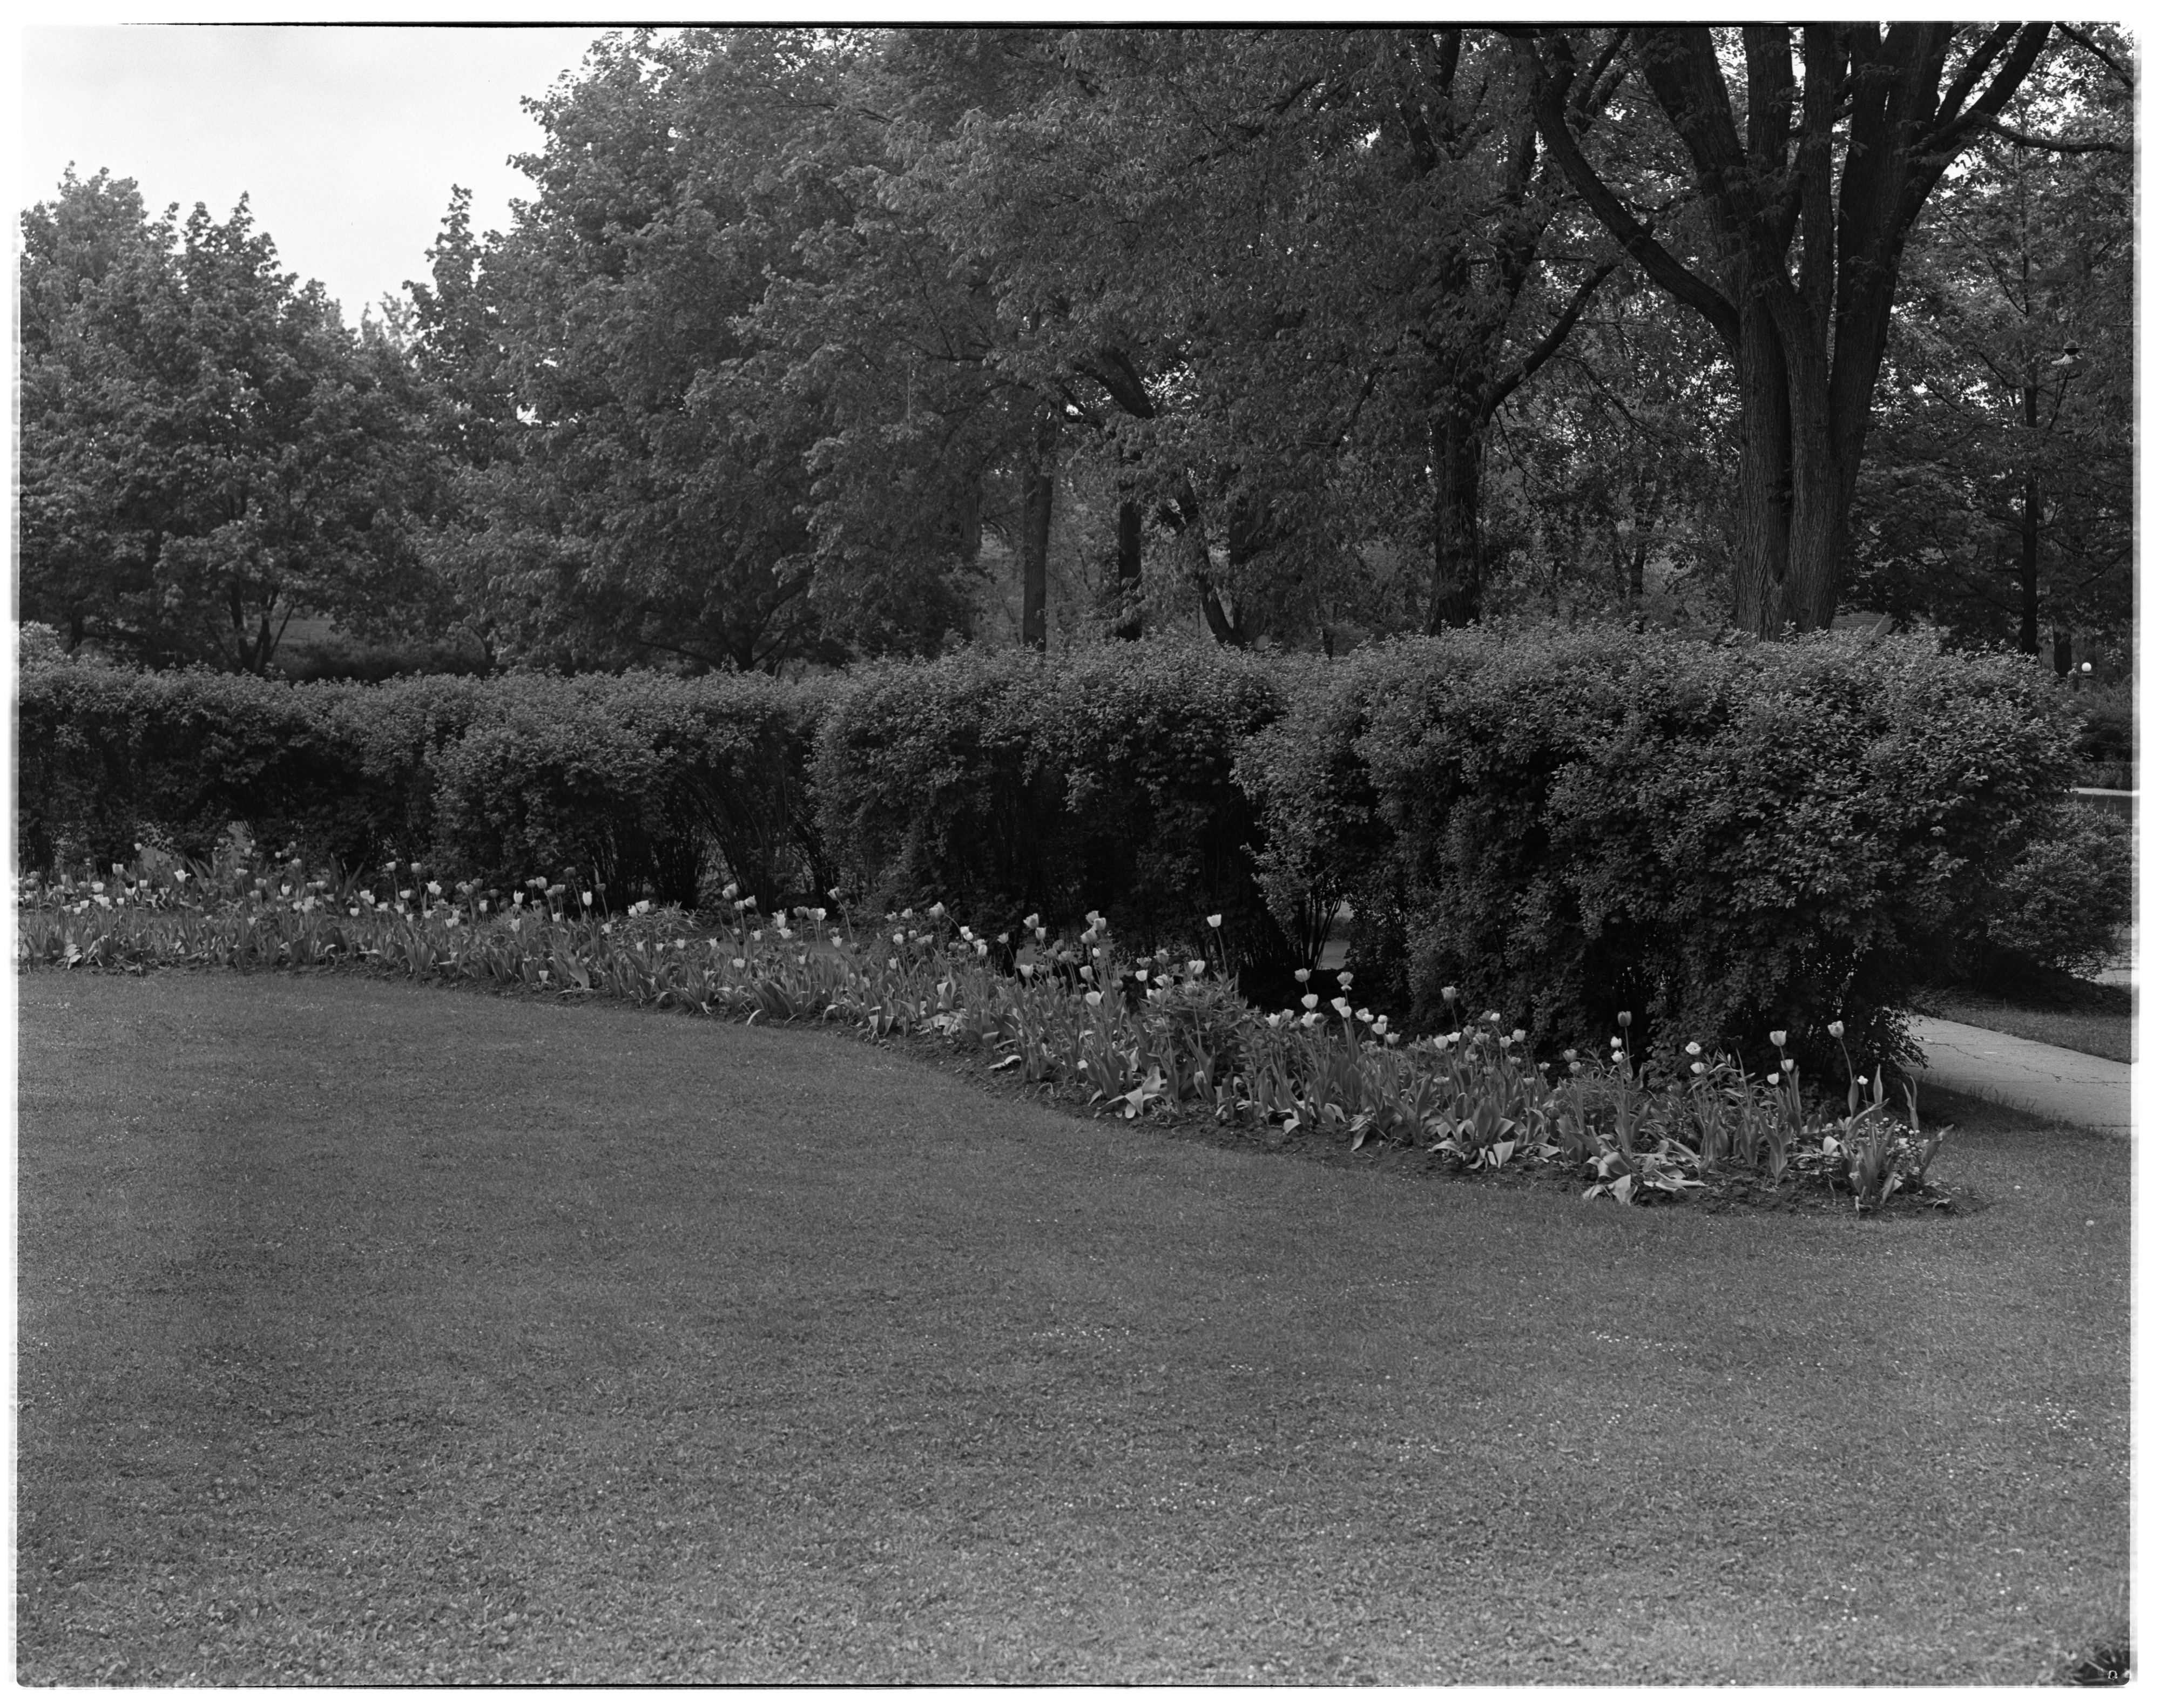 Tulips at the Arthur W. Stace and Lillian M. Stace Garden image